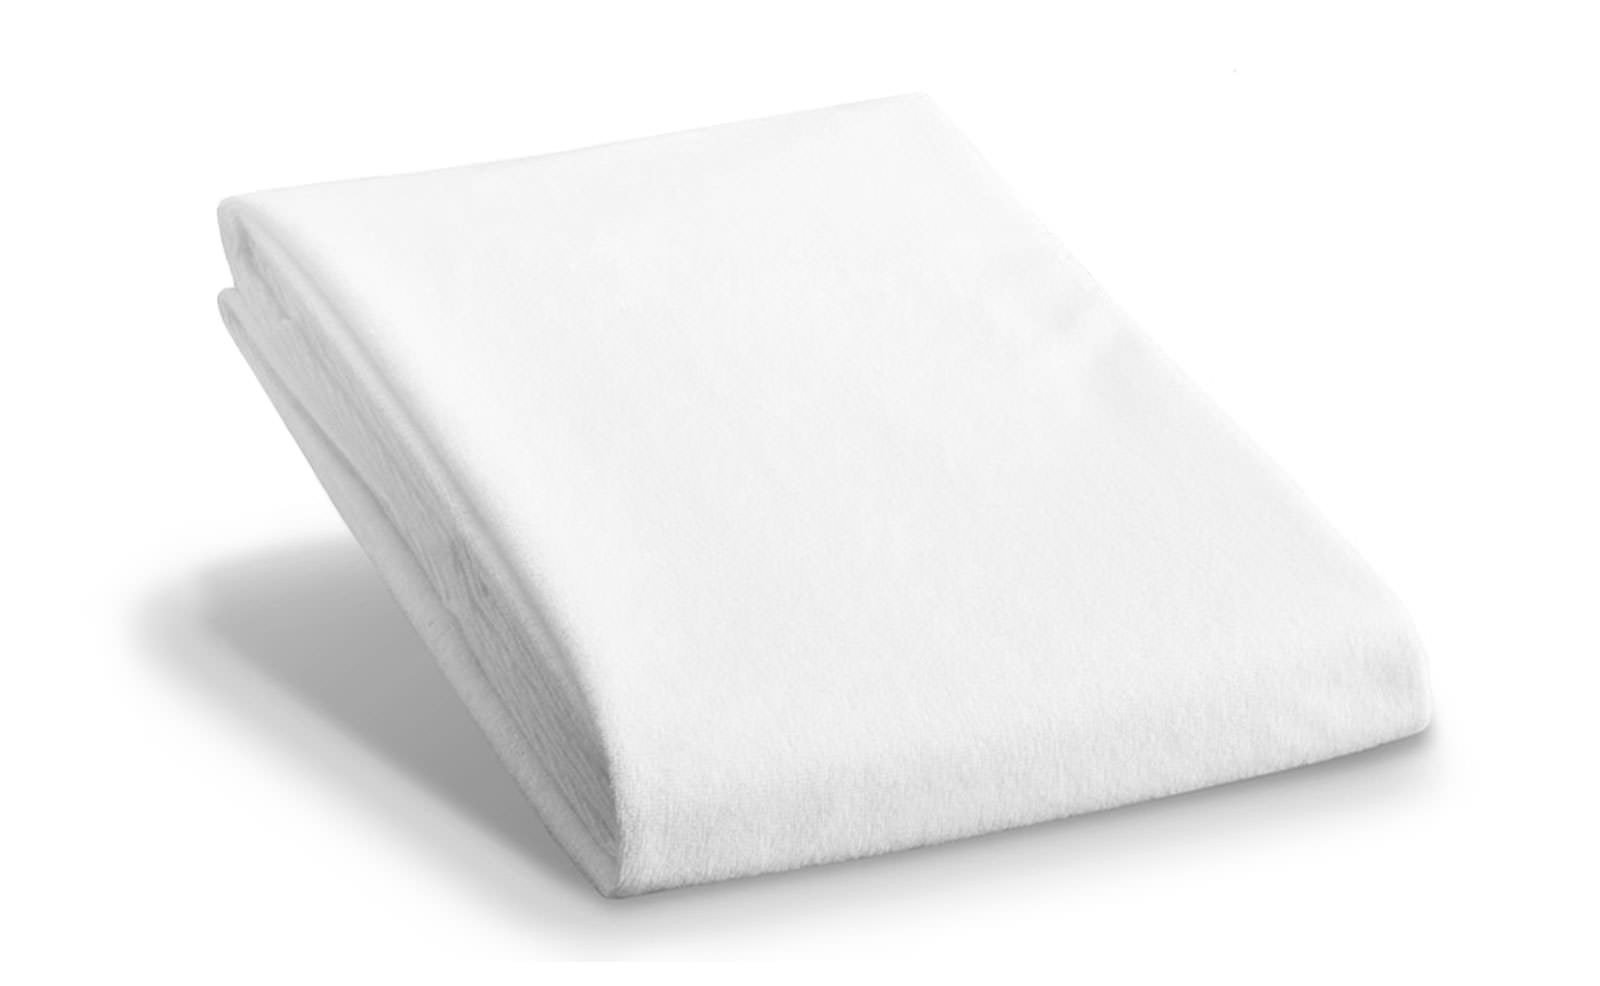 amerisleep waterproof mattress protector and cover